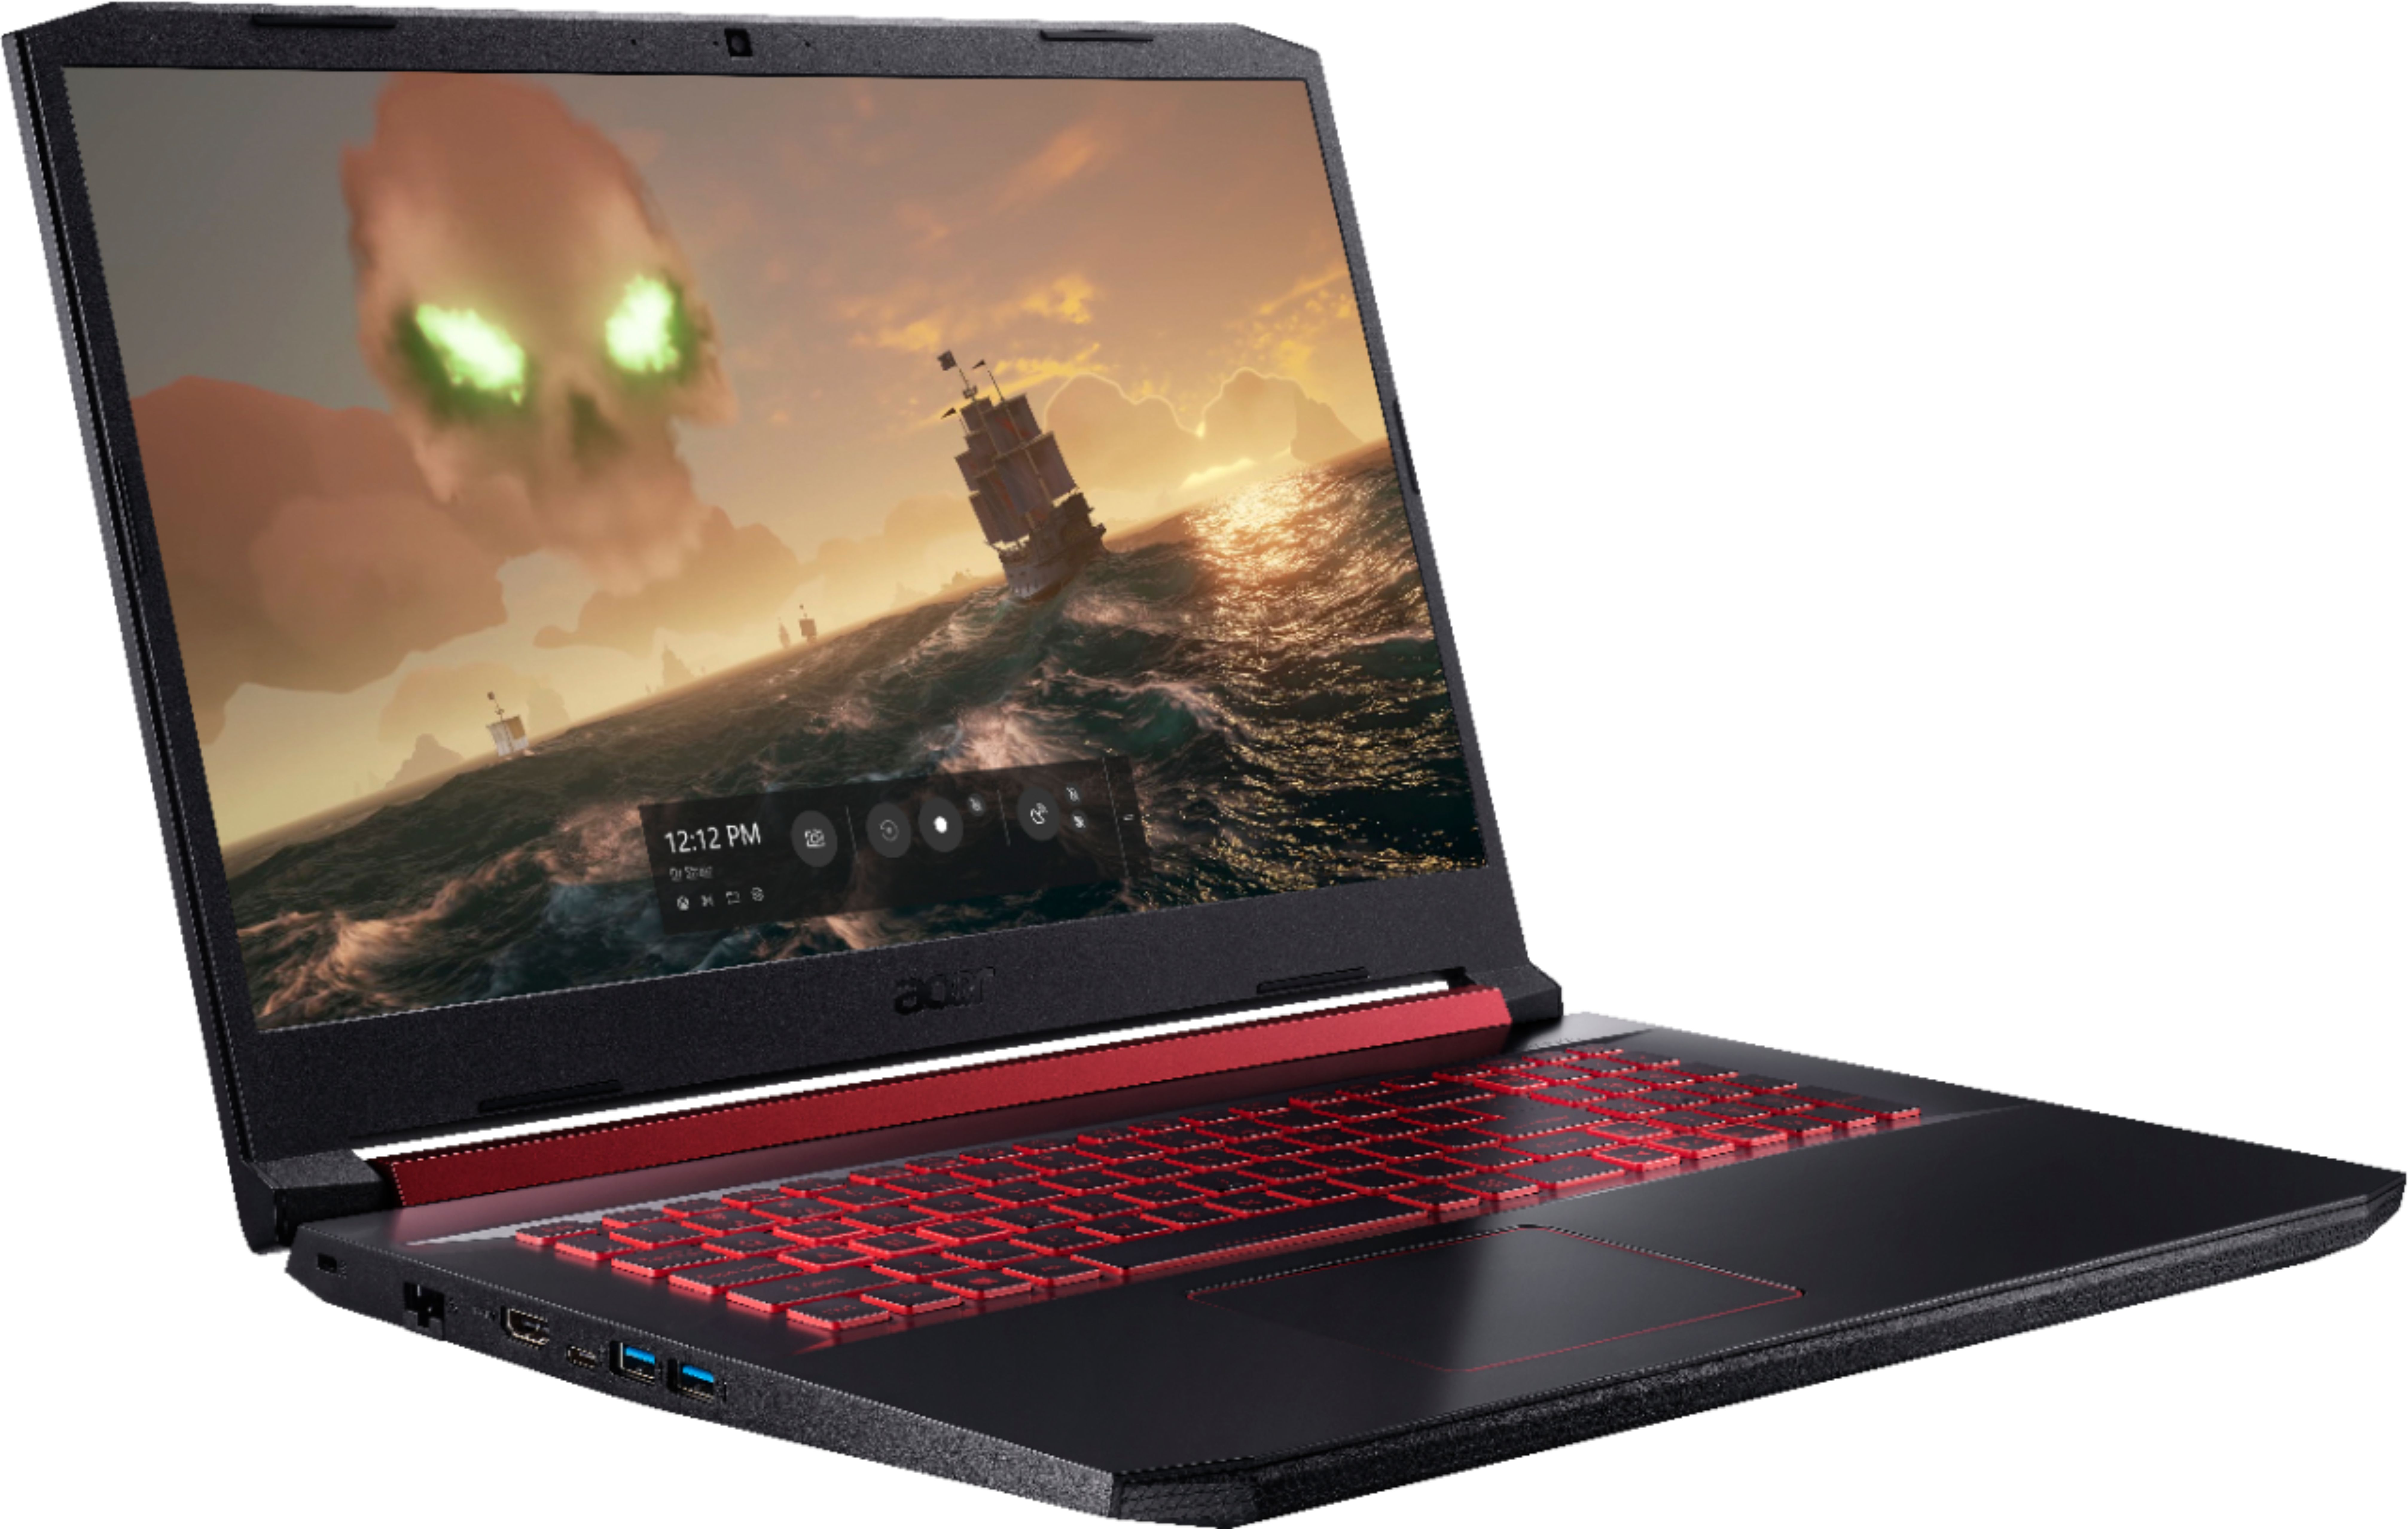 """Angle Zoom. Acer - Nitro 5 17.3"""" Gaming Laptop - Intel Core i5 - 8GB Memory - NVIDIA GeForce GTX 1650 - 512GB Solid State Drive - Black."""